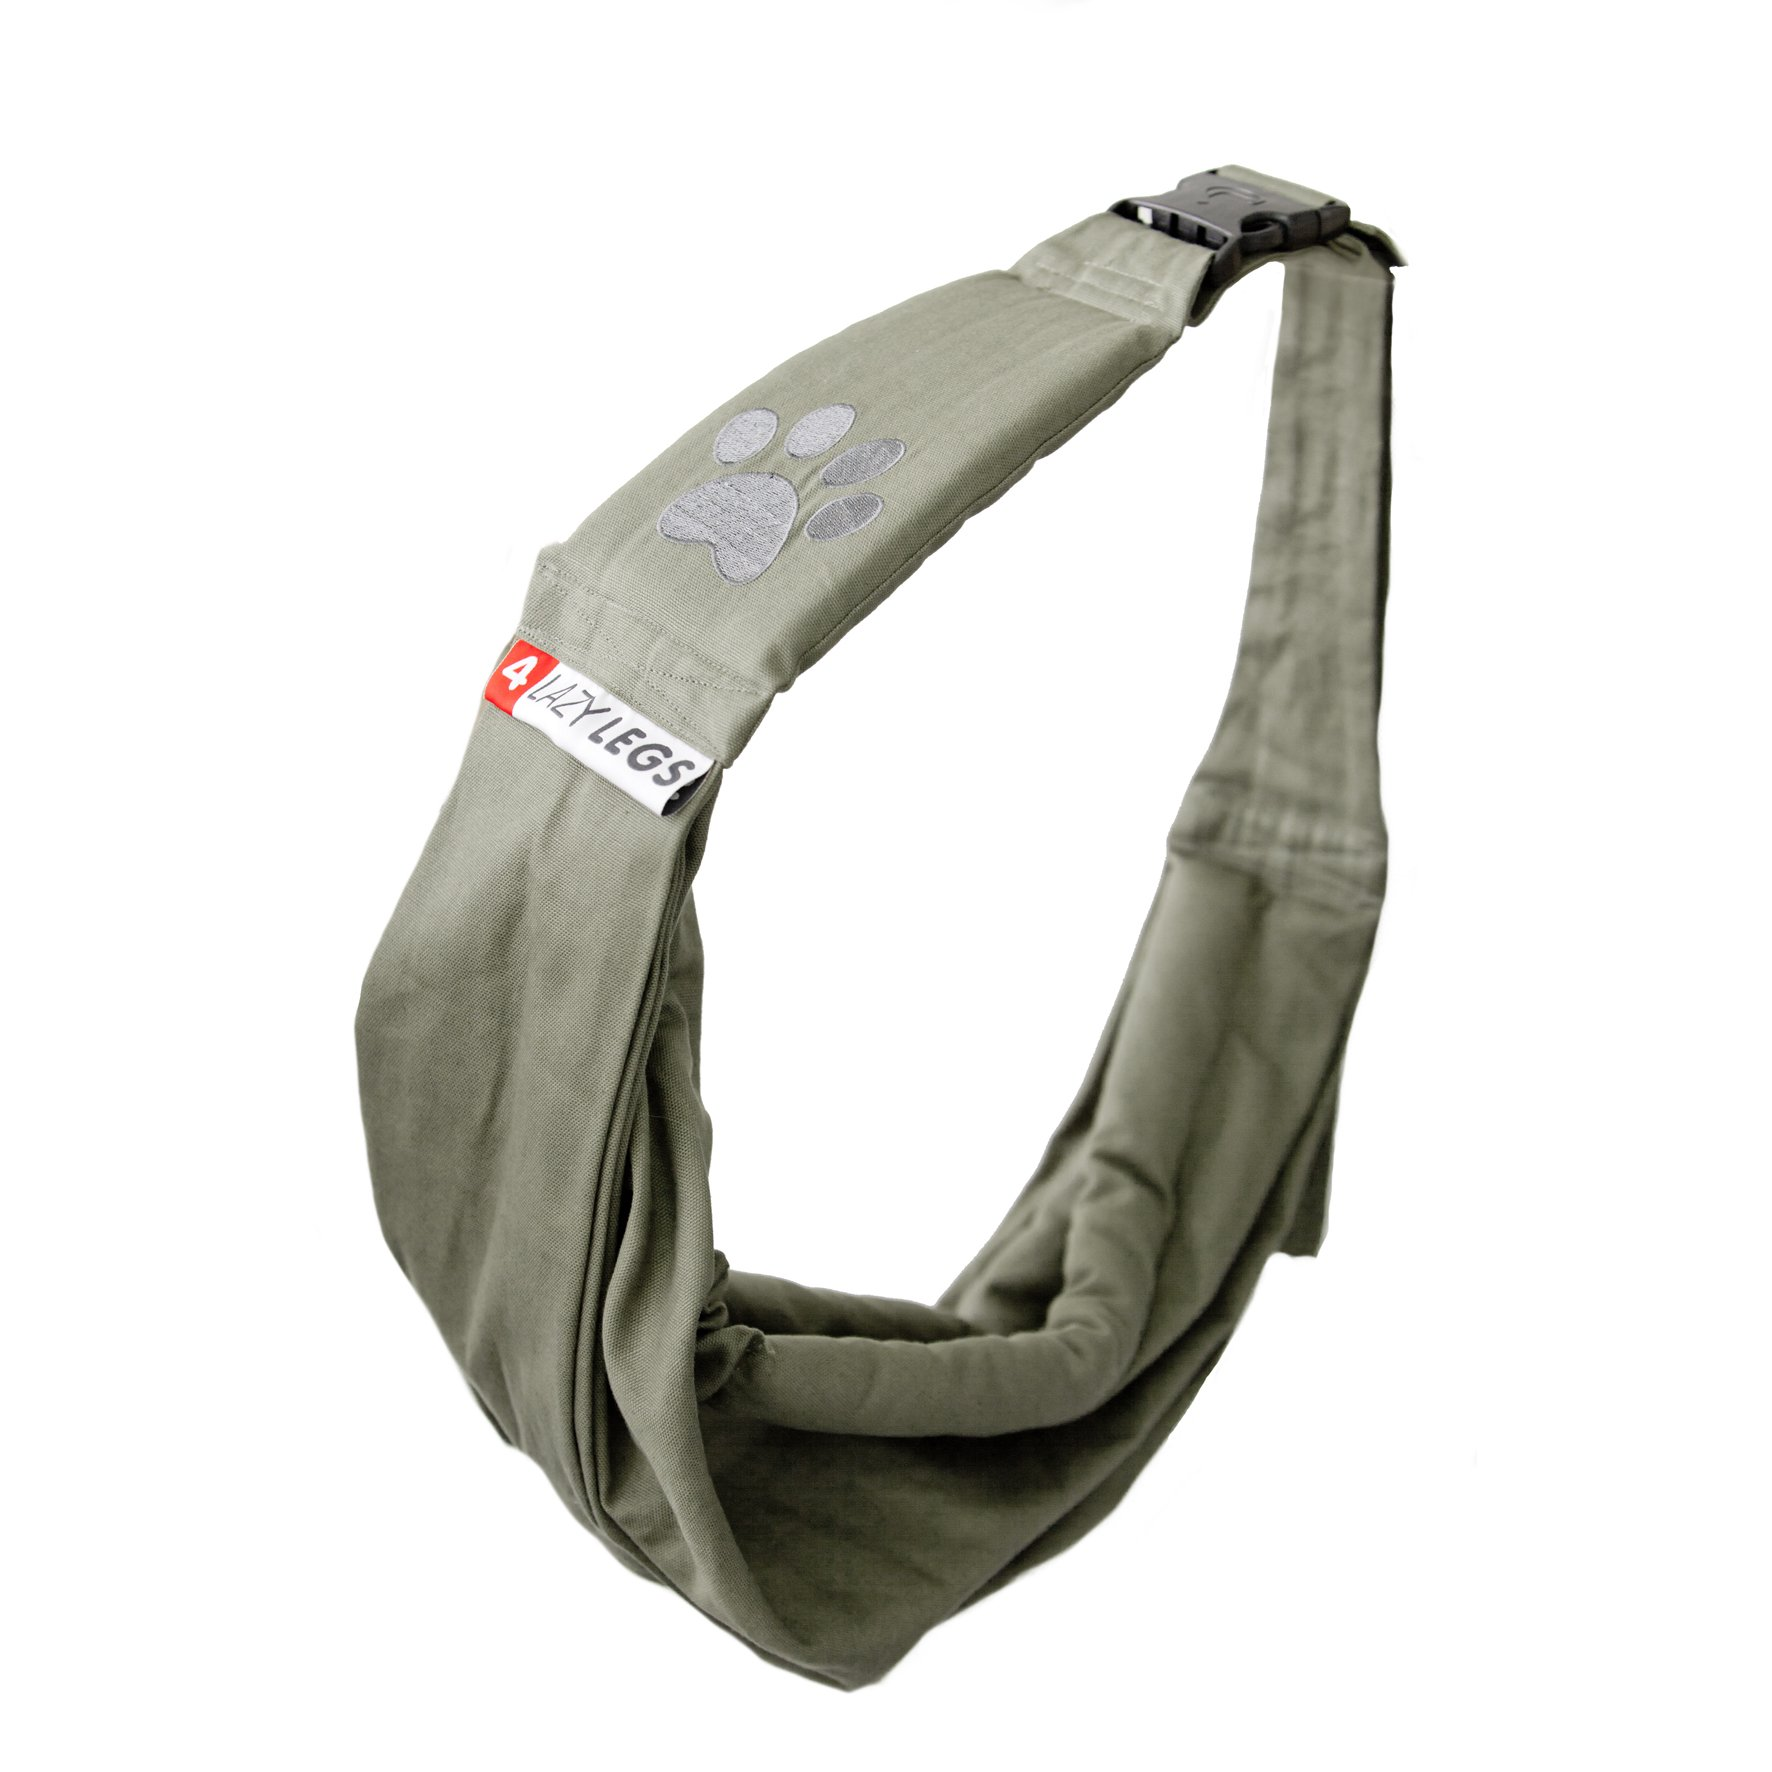 4 Lazy Legs Adjustable Pet Sling Carrier, Carrier for Dog, Army Green